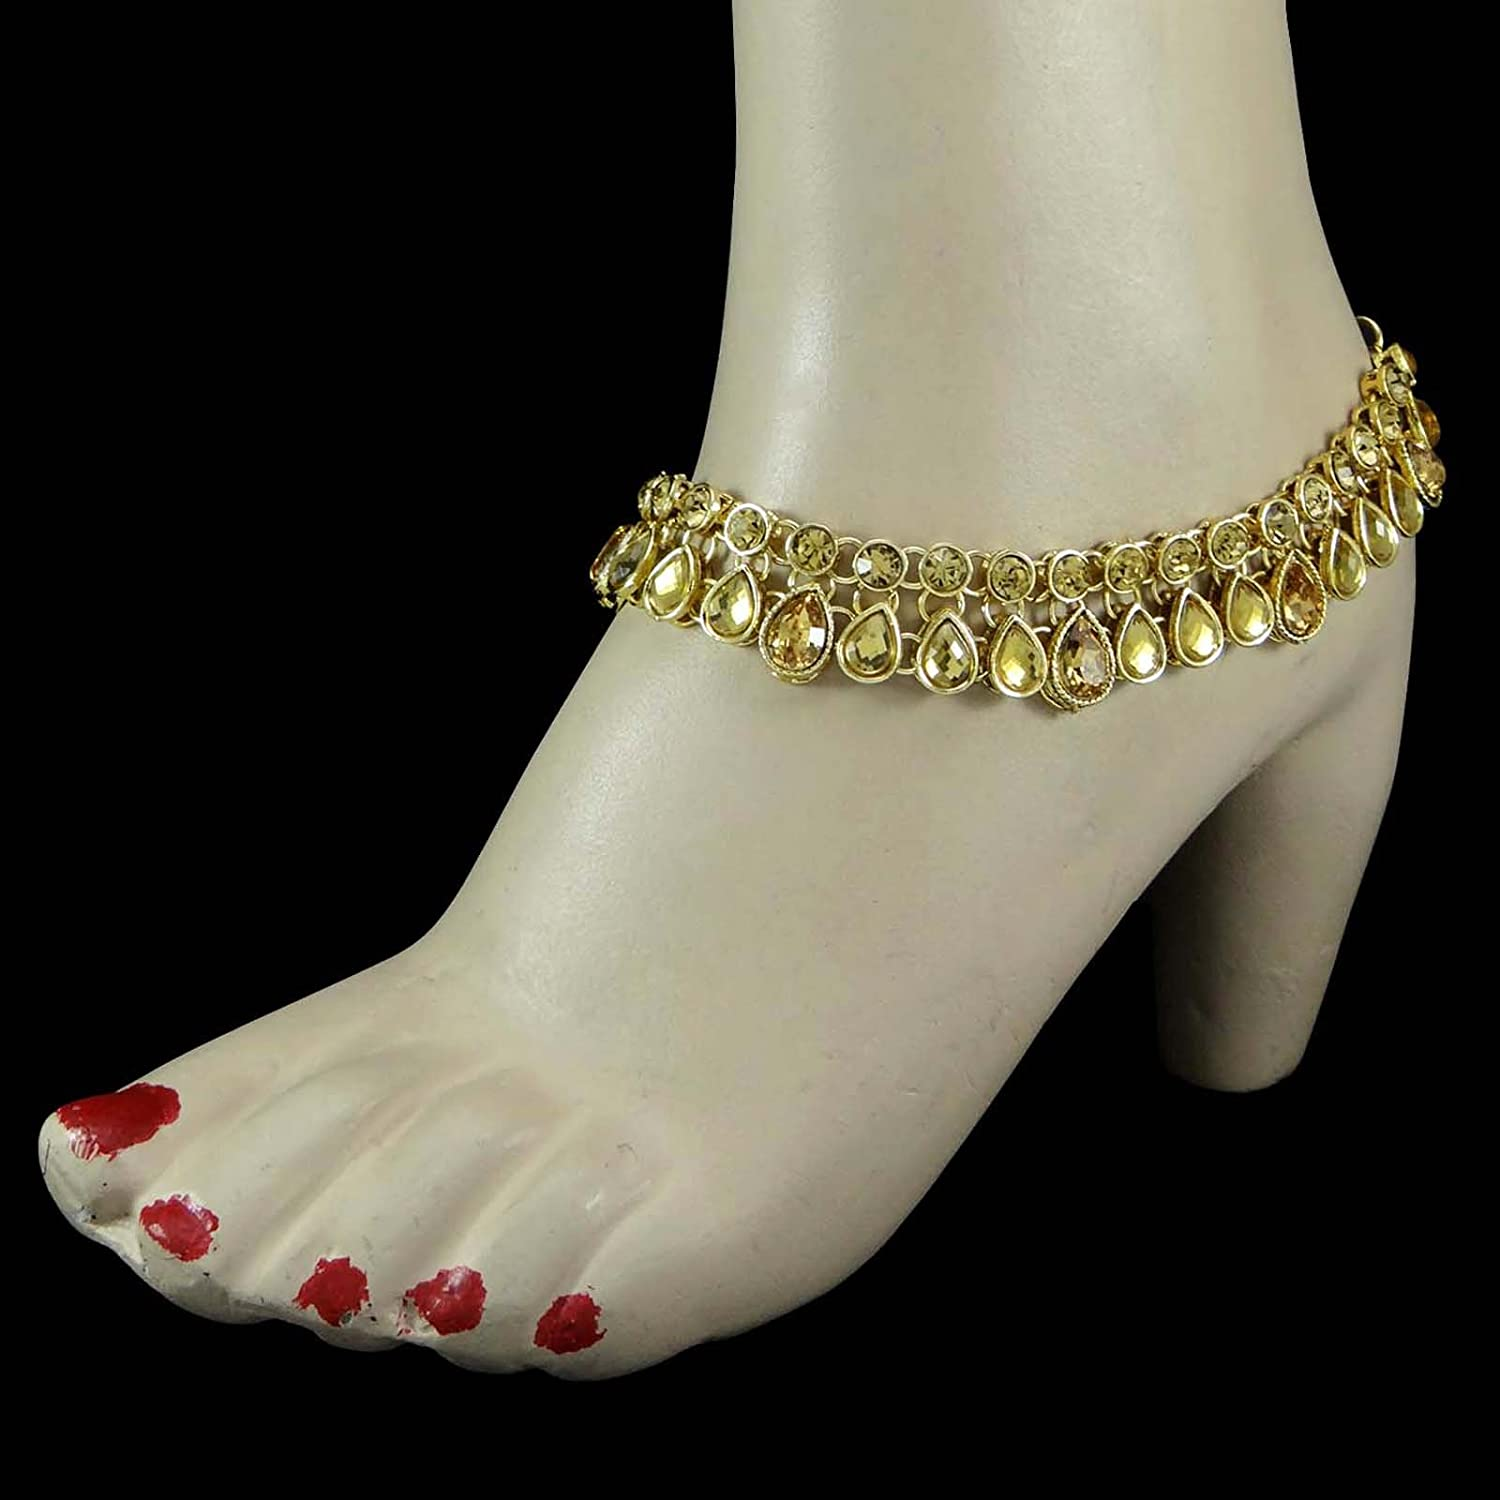 listing anklet fullxfull fashion bridal jewelry crystal il wedding poolside destination glass sandals ijnk foot rhinestones beach barefoot